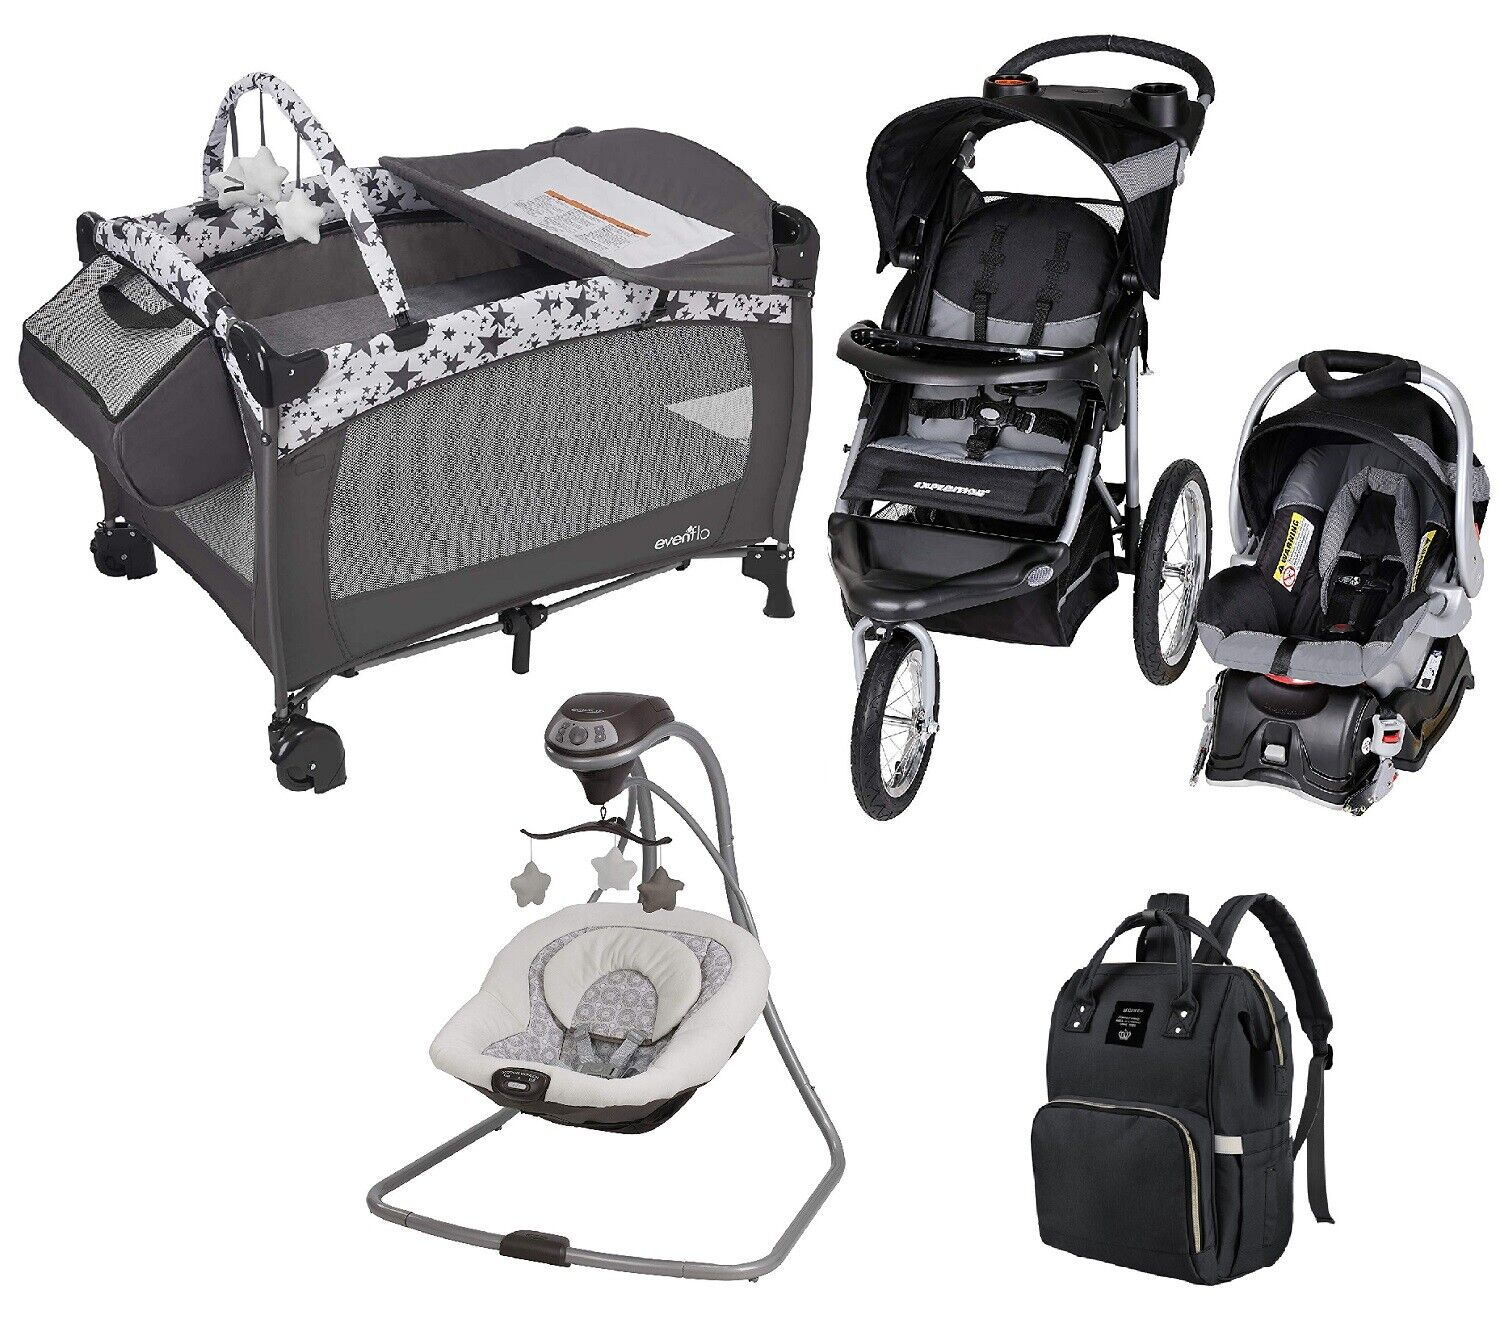 Baby Jogger Stroller with Car Seat Infant Playard Swing Trav